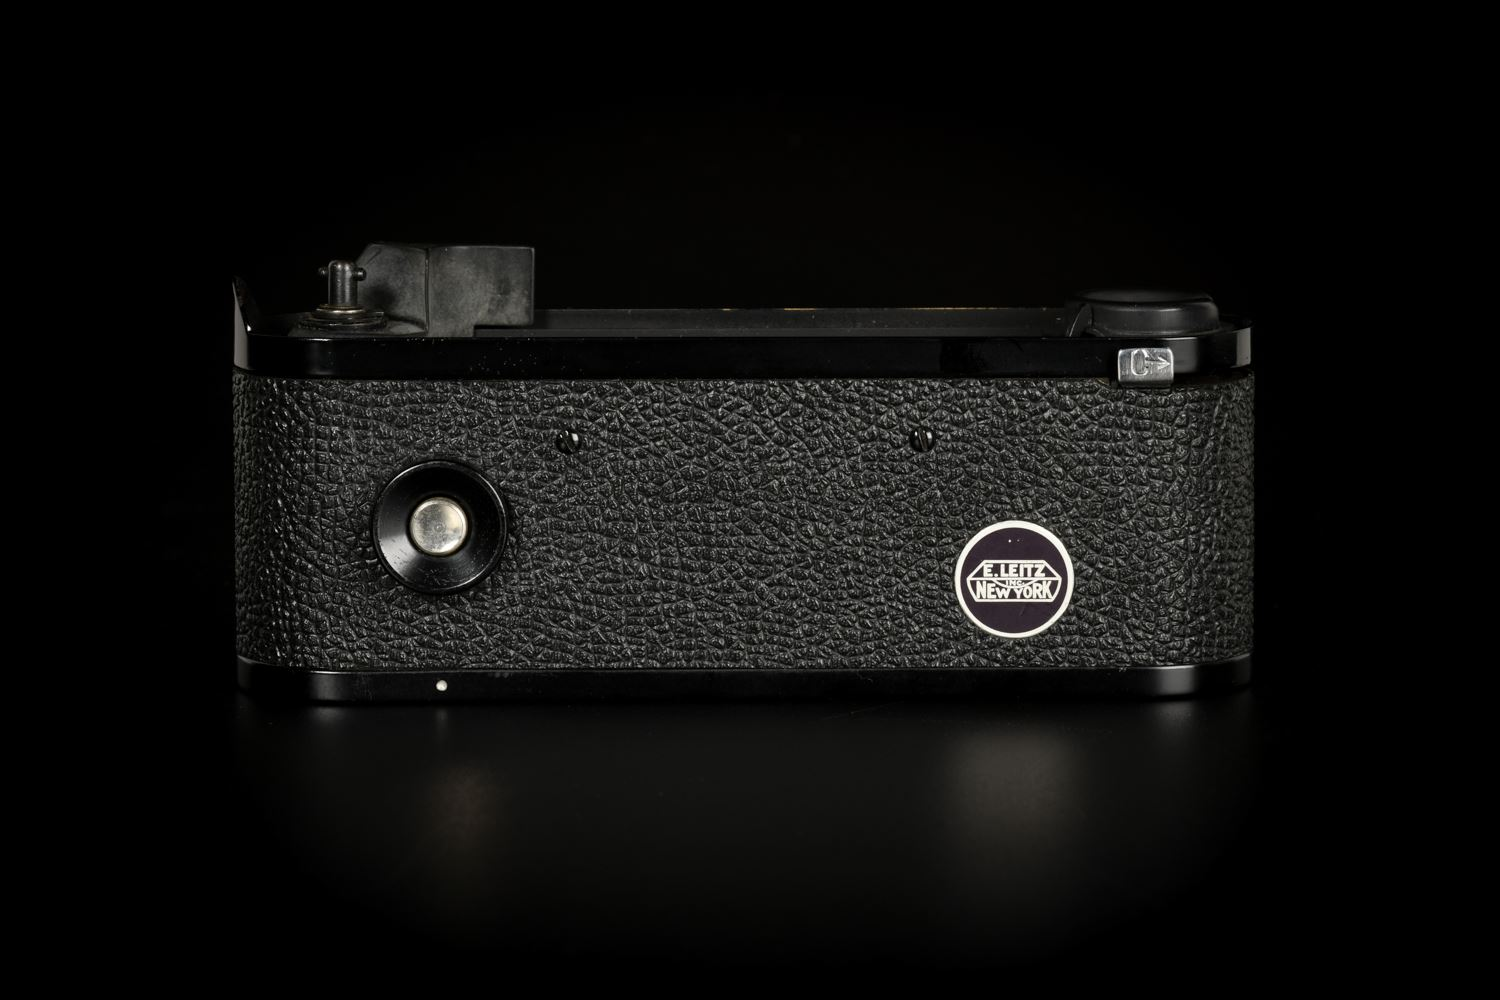 Picture of Leica M4-M Black Paint with New York Motordrive and Power Pack